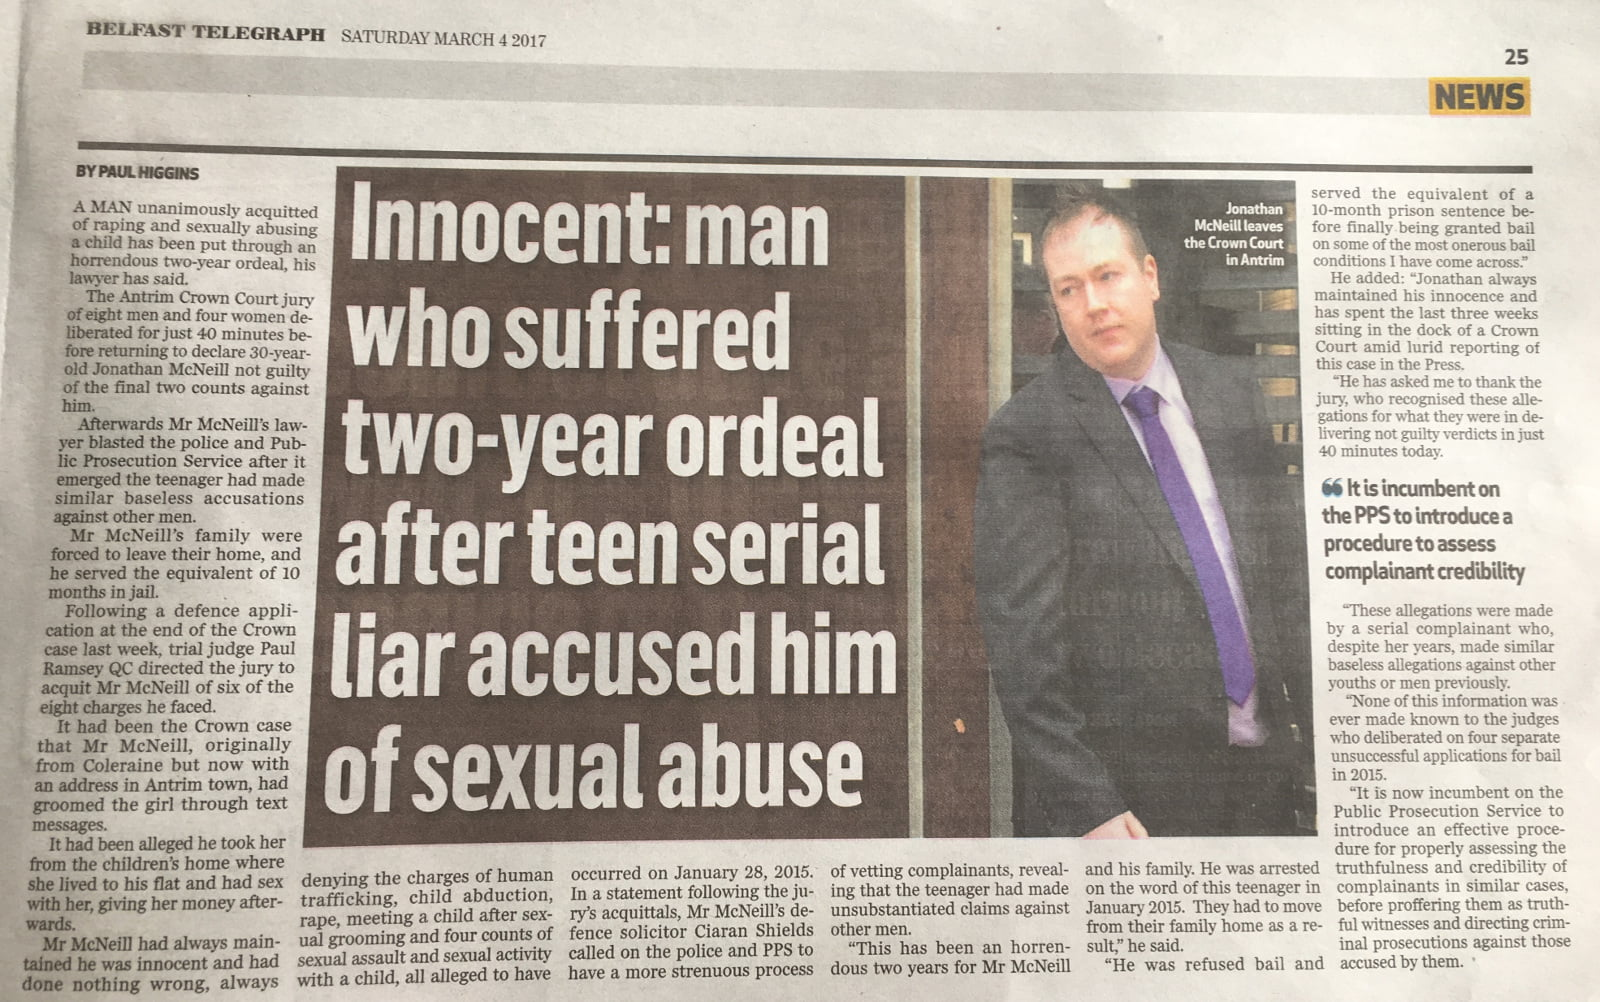 Innocent: man who suffered two-year ordeal after teen serial liar accused him of sexual abuse